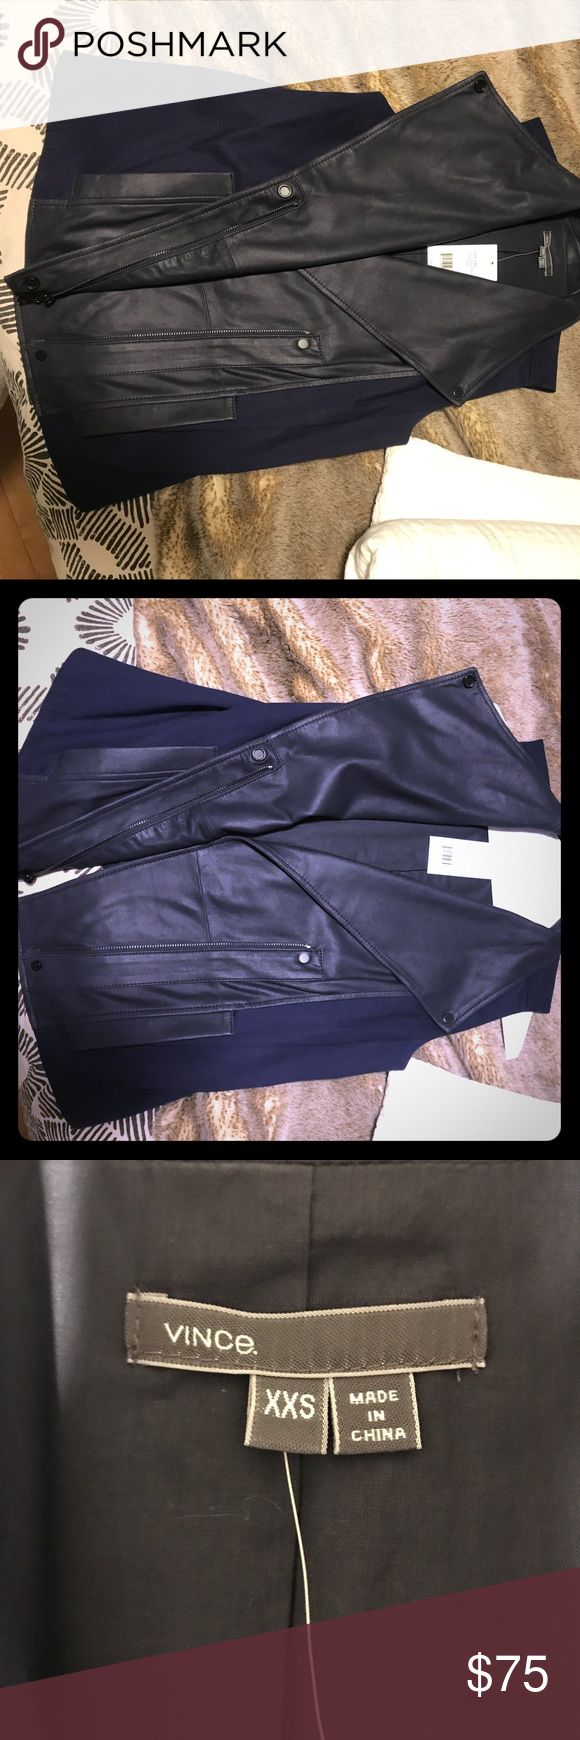 Vince Navy Leather and Blue Khaki Vest Vince (never worn! Brand new!) navy leather and blue khaki vest jacket. Size is XXS - it fits anyone from XXS to Medium (I am normally a medium size [i am 5 ft 5 in and 130 lbs.]) and it looks fitted in a cute way on me. Vince Jackets & Coats Vests